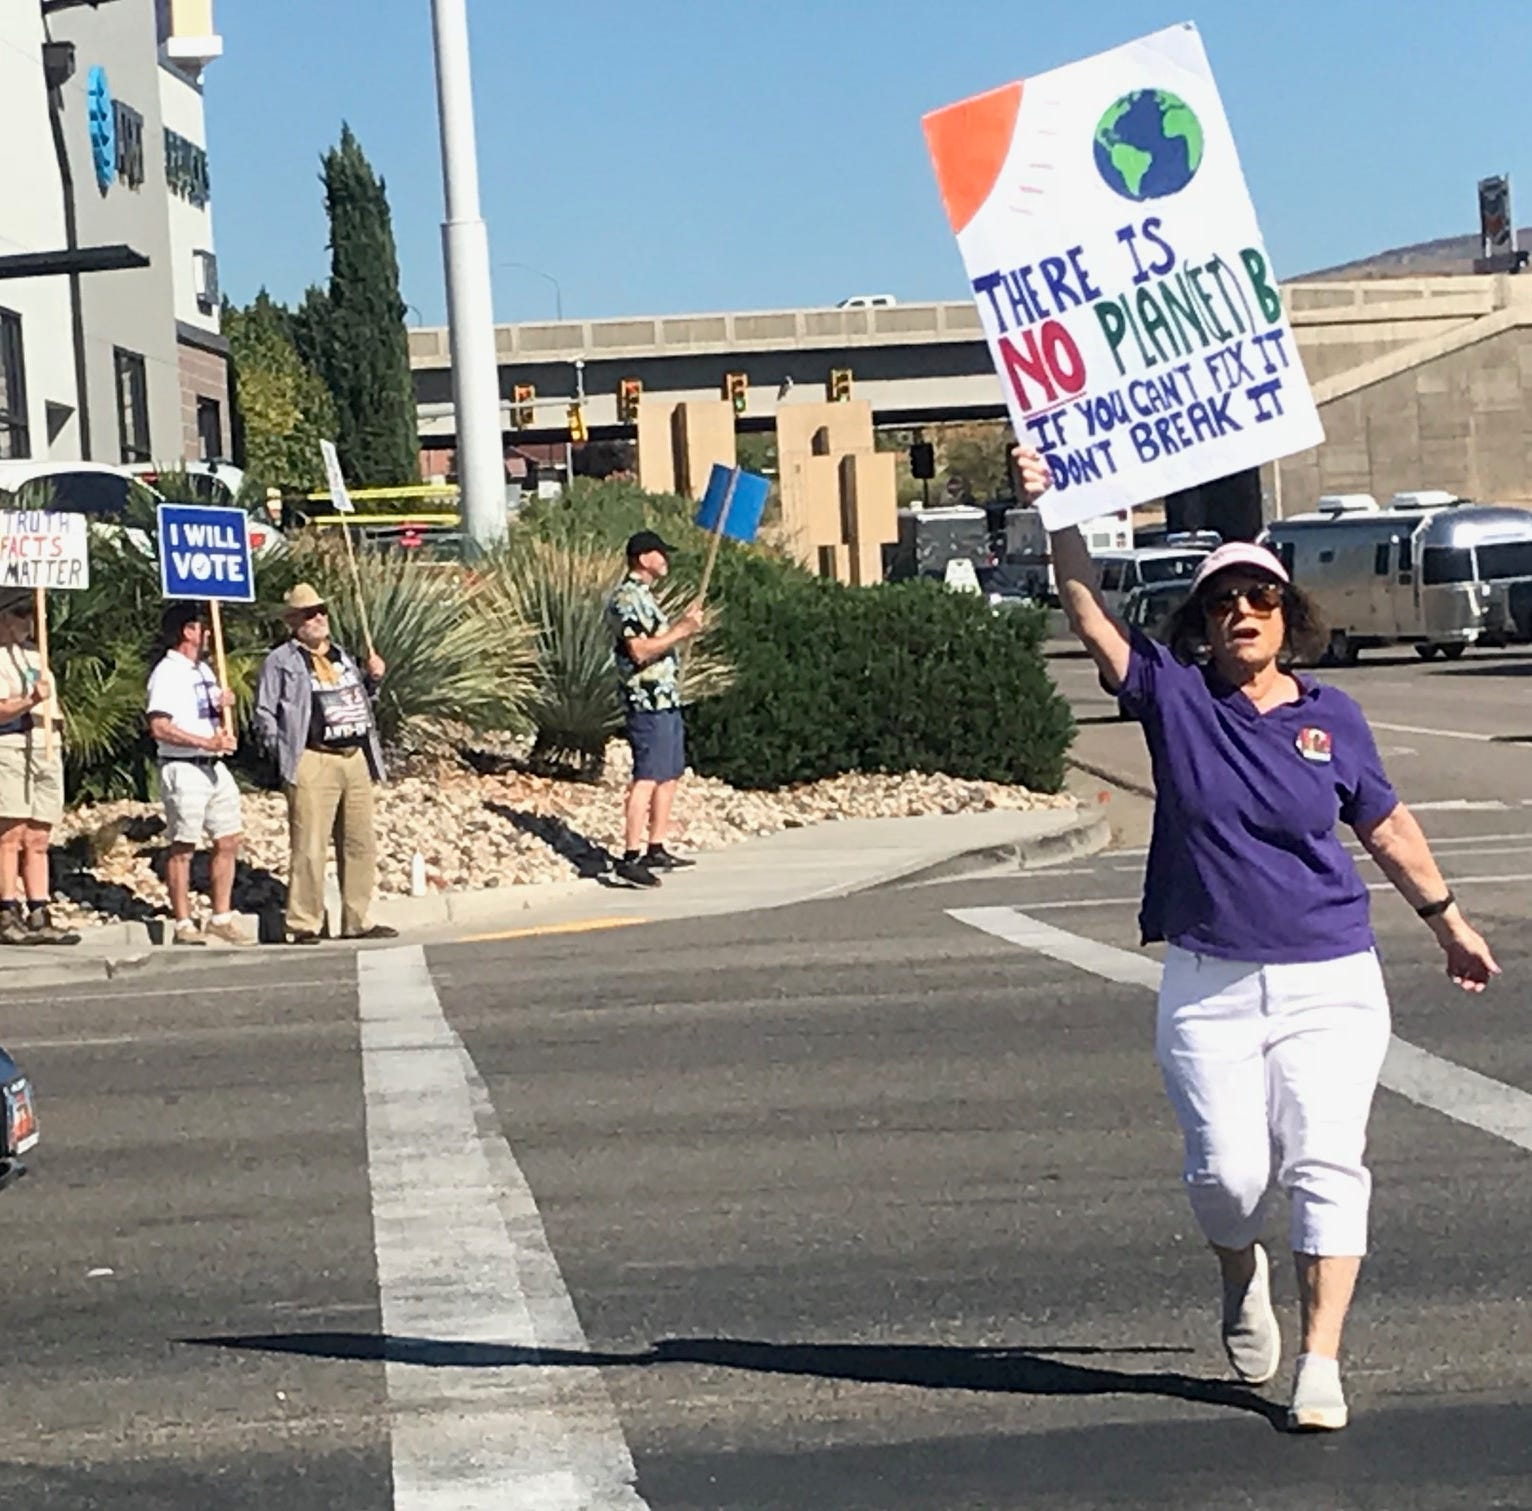 St. George-area residents march in call to combat climate change